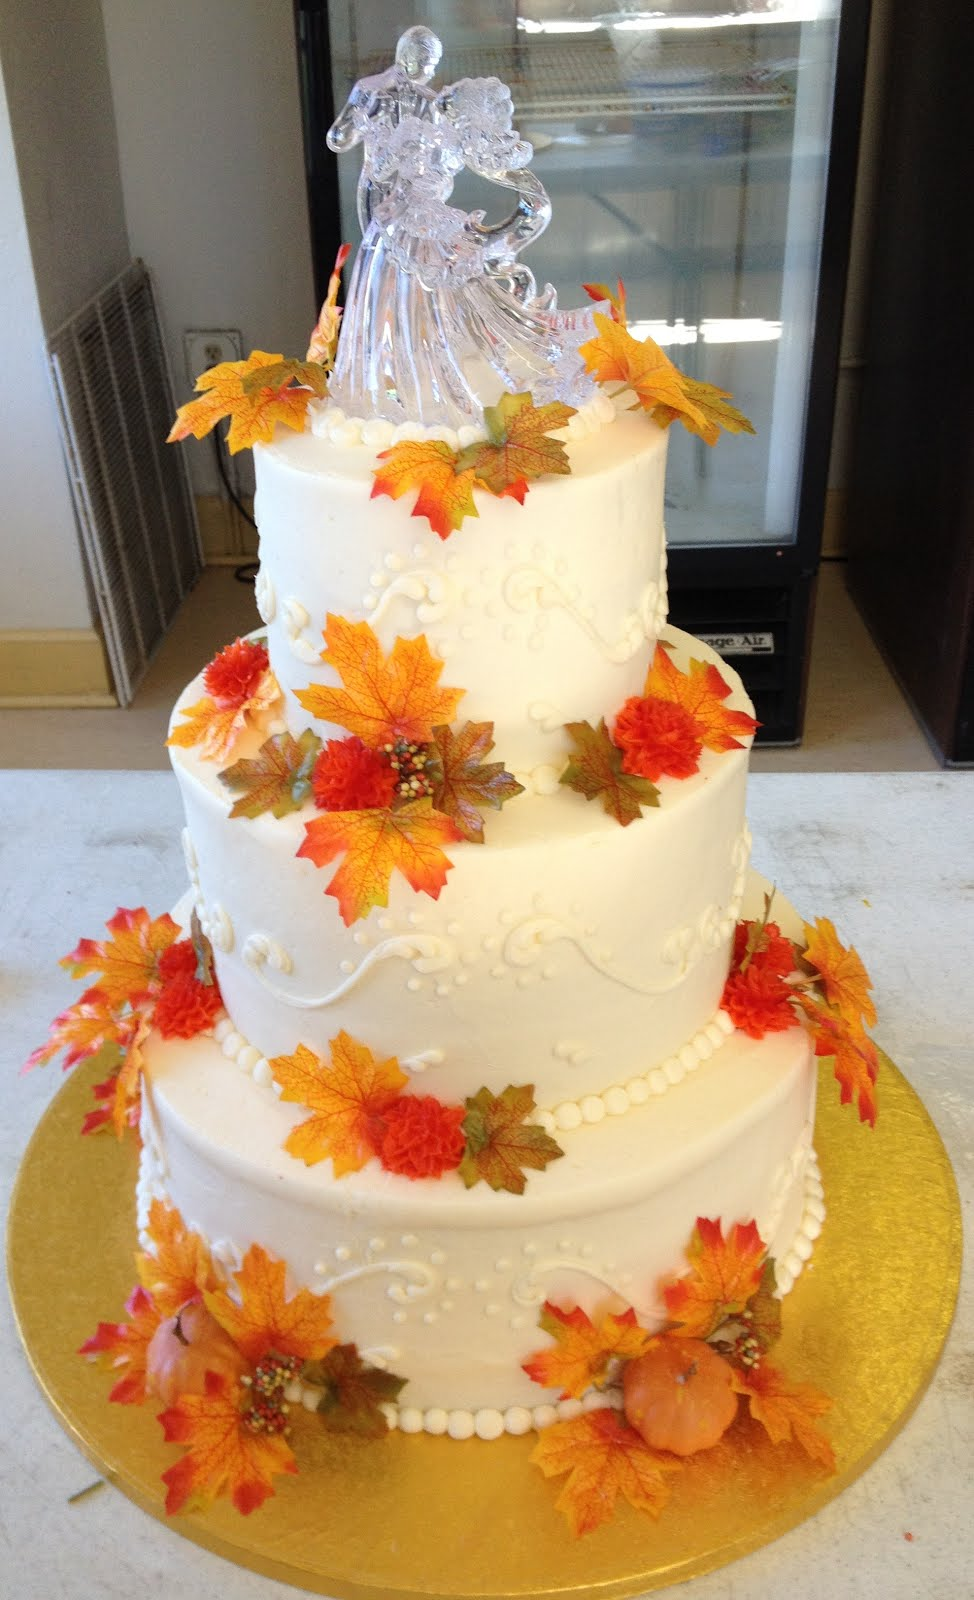 Party People Event Decorating Company: Fall Wedding